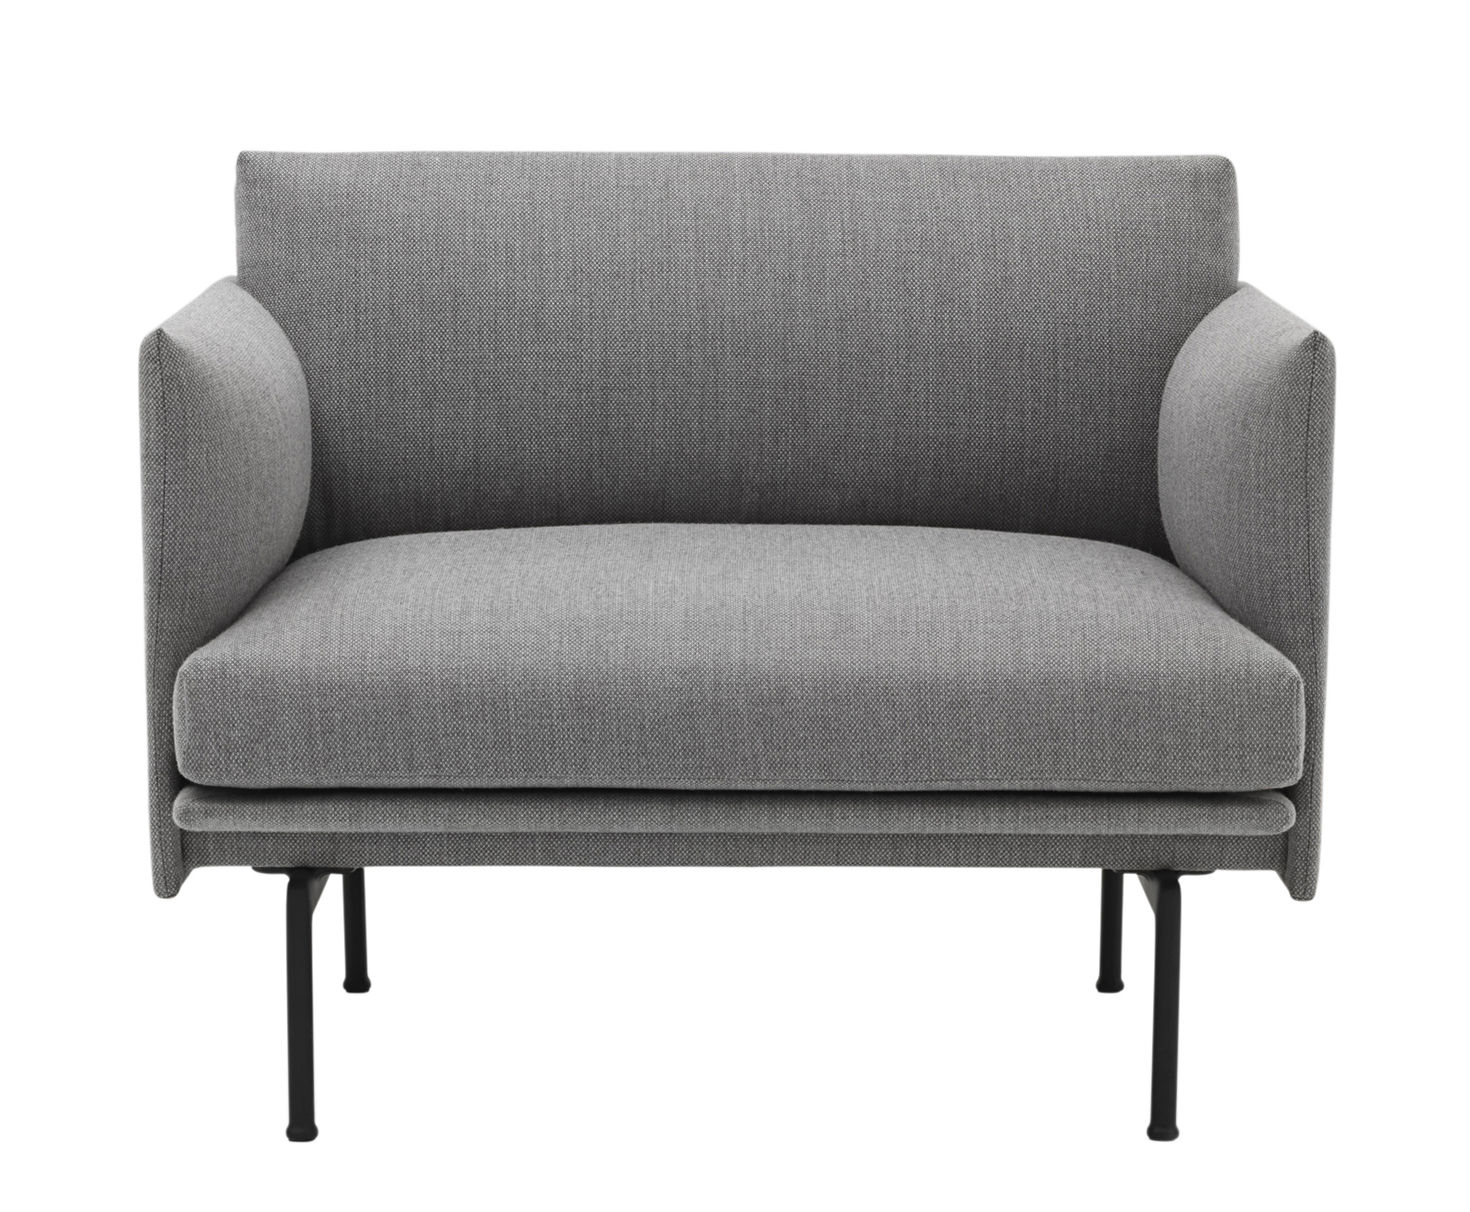 Furniture - Armchairs - Outline Padded armchair - / Fabric by Muuto - Light grey (Fiord fabric) - Fabric, Lacquered aluminium